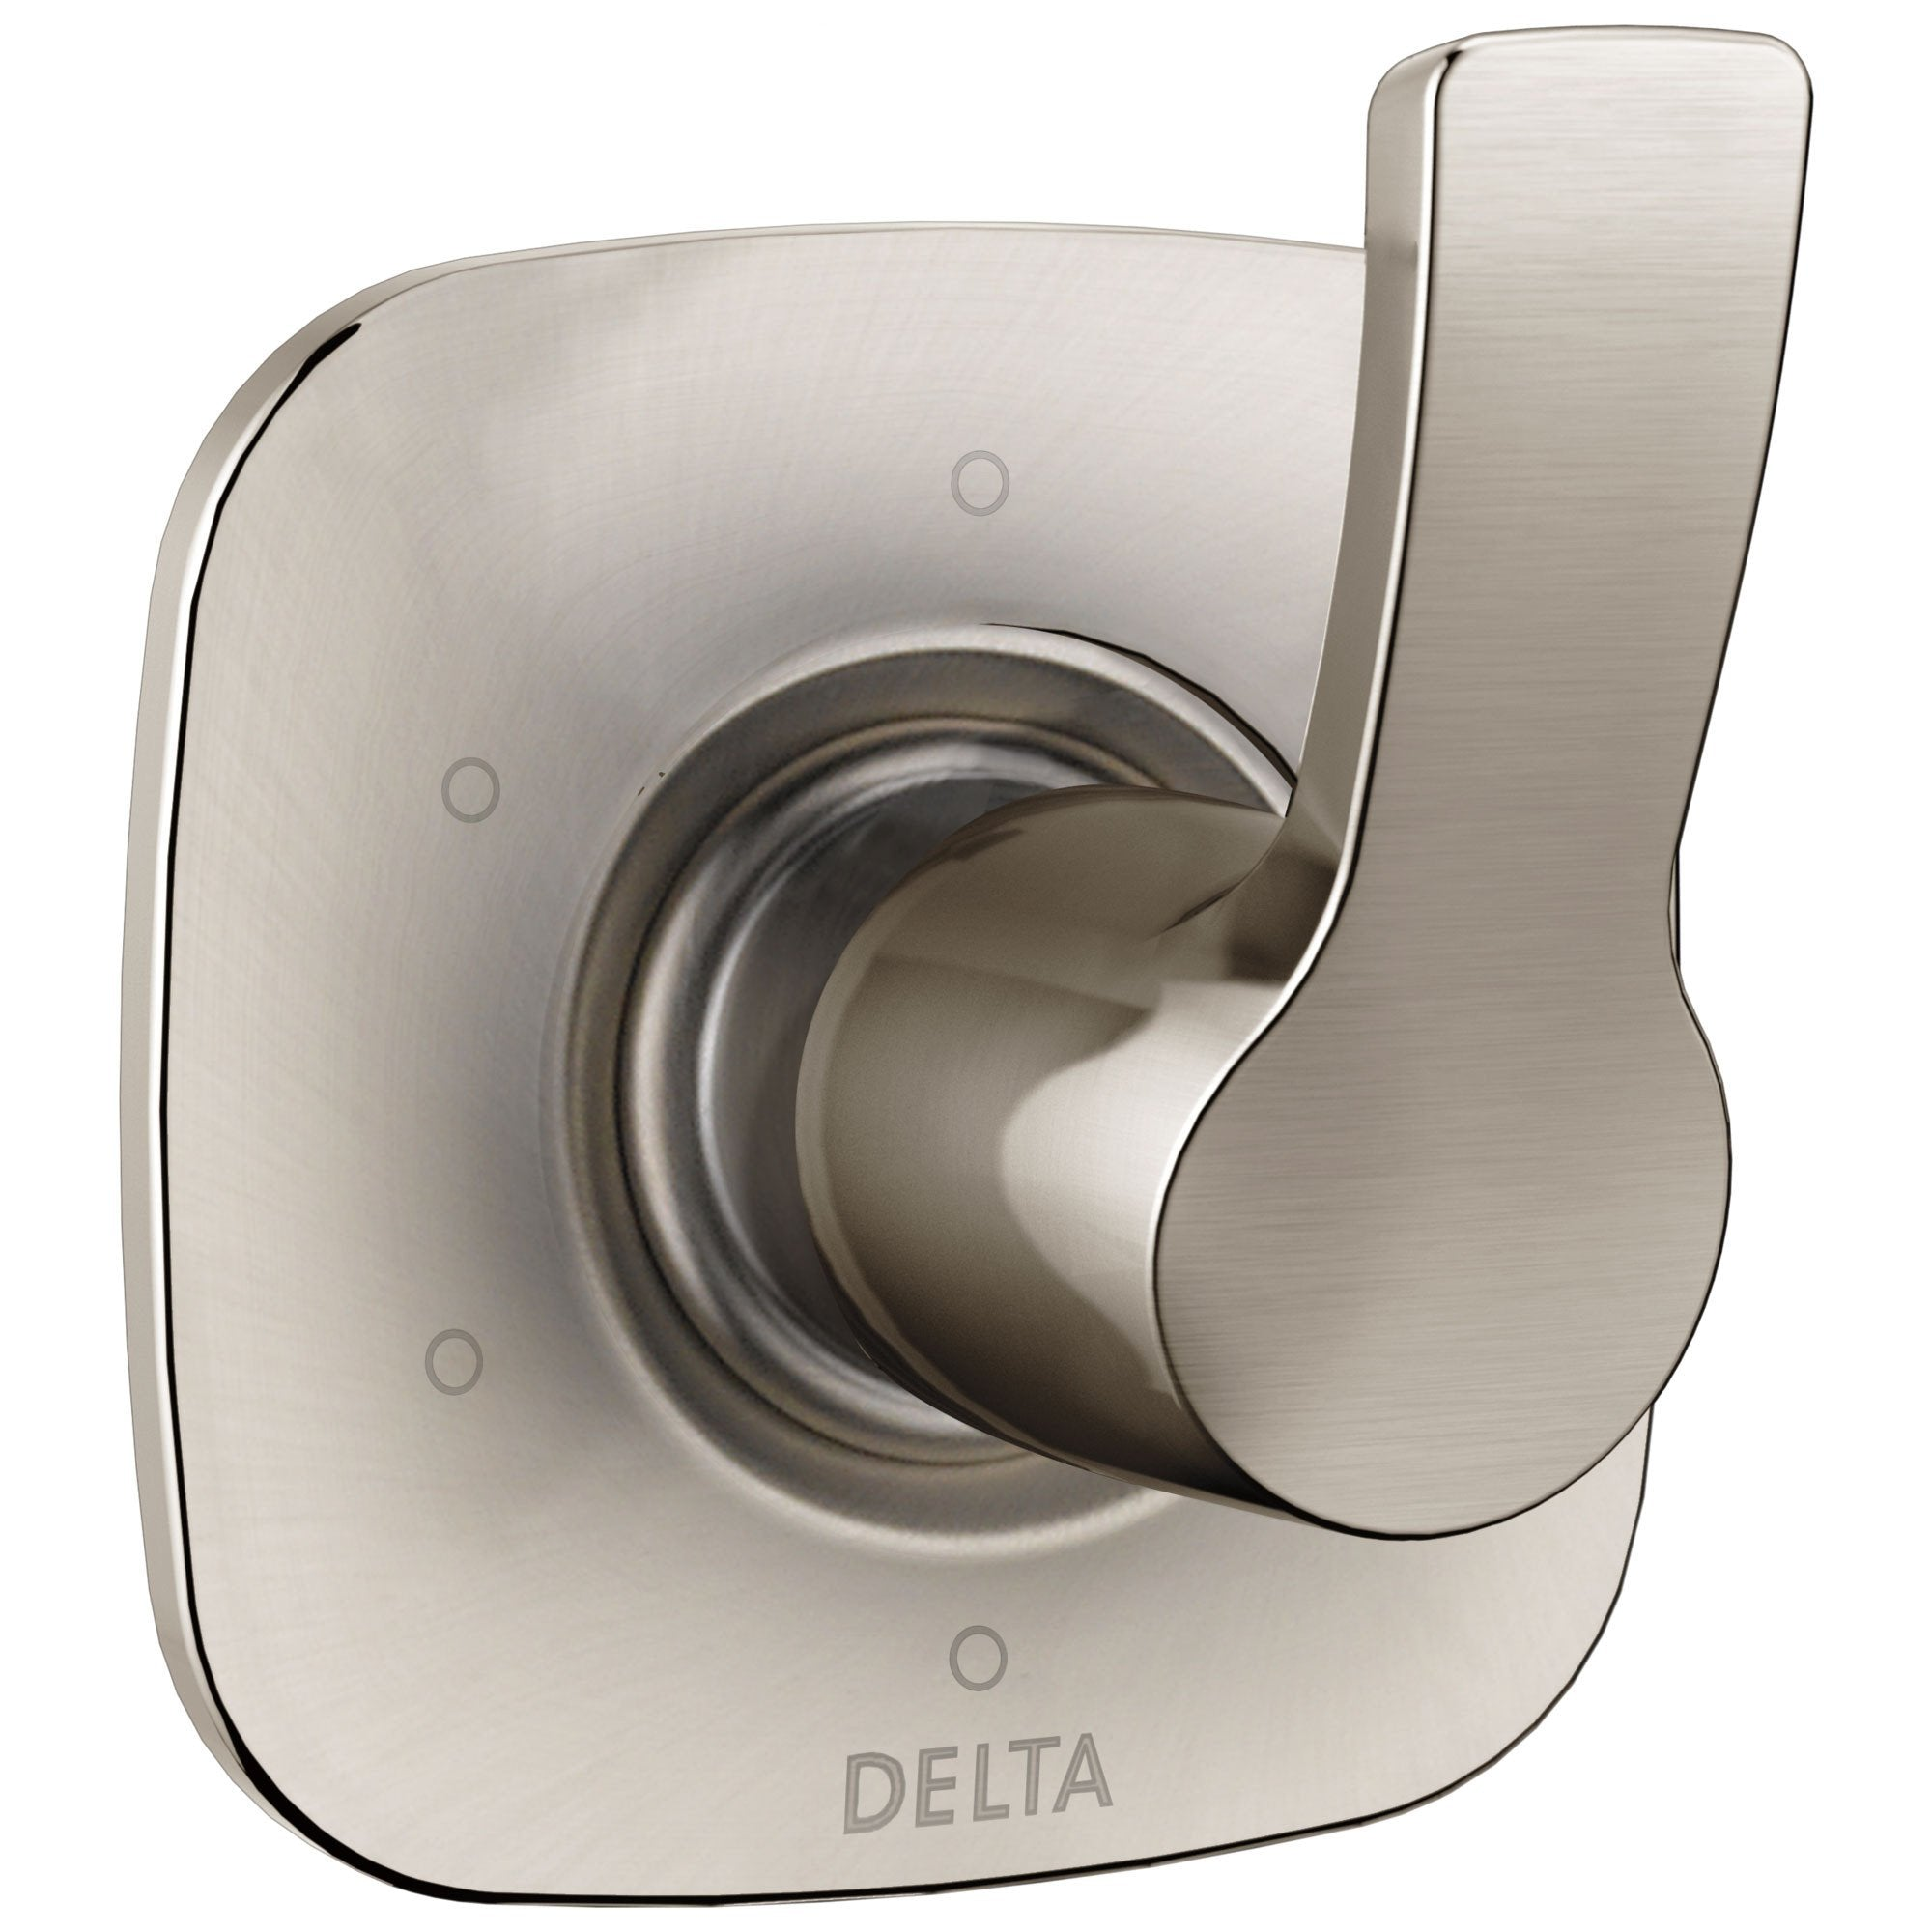 Delta Tesla Collection Stainless Steel Finish 6-Setting 3-Port Modern Single Handle Shower Diverter Trim Kit (Valve Sold Separately) 732793